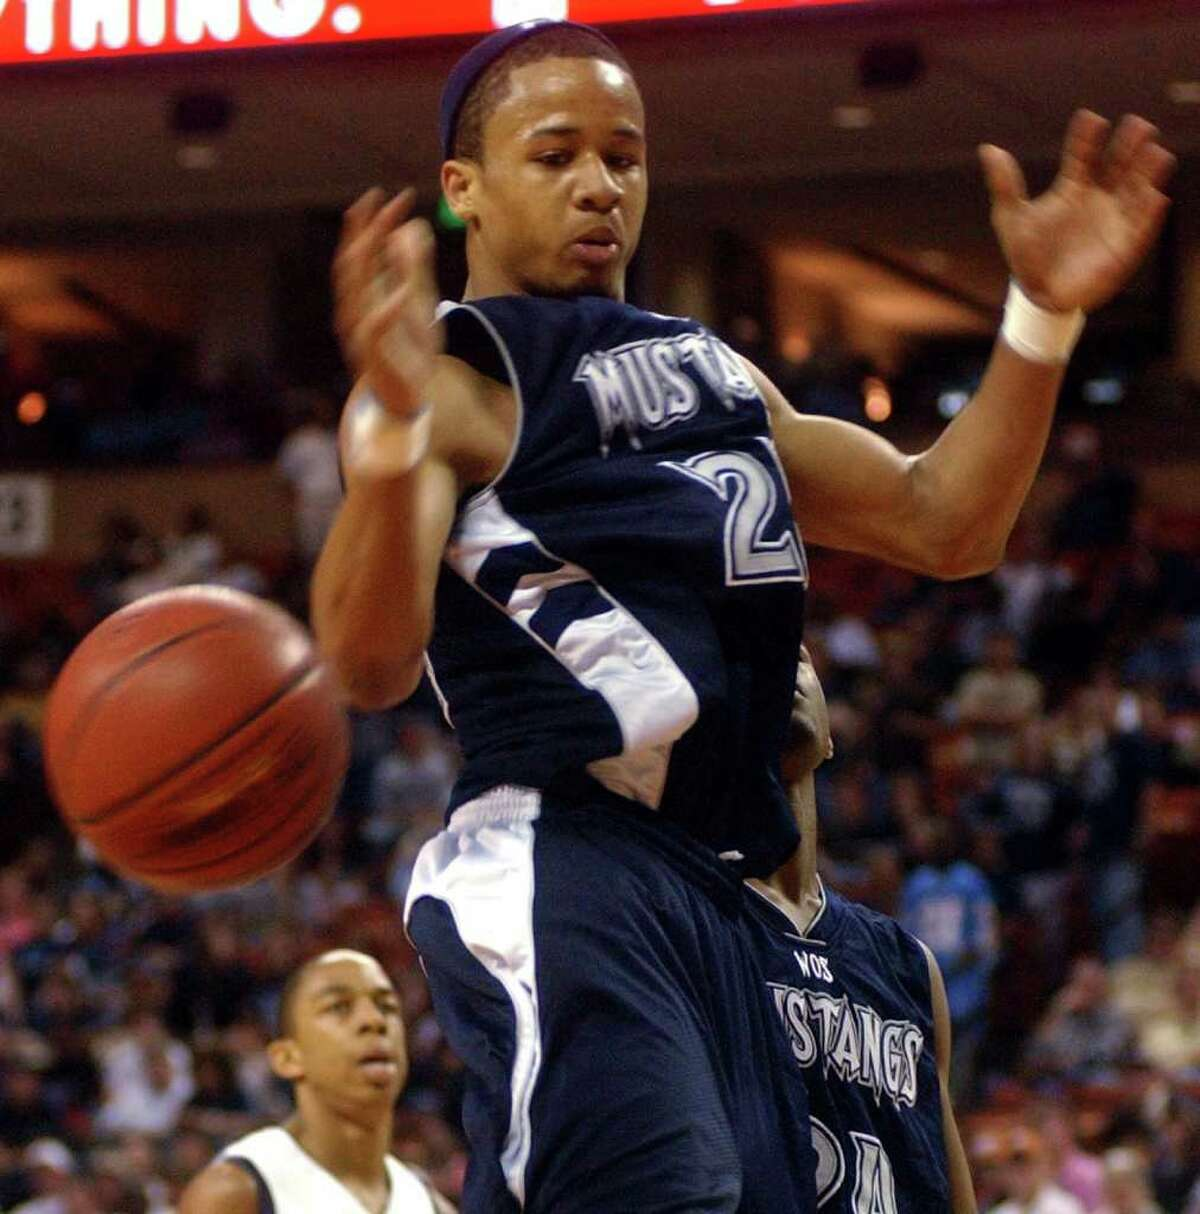 West Orange-Stark's Earl Thomas (No. 22) has the ball knocked out of his hands during a final four playoff basketball game against Carrollton Ranchview at the Frank Erwin Center at the University of Texas in Austin on Thursday, March 9, 2006. Carrollton Ranchview High School won the game 77-52 and advances to the 3A state championship. (PHOTO/THE BEAUMONT ENTERPRISE, Mark M. Hancock)